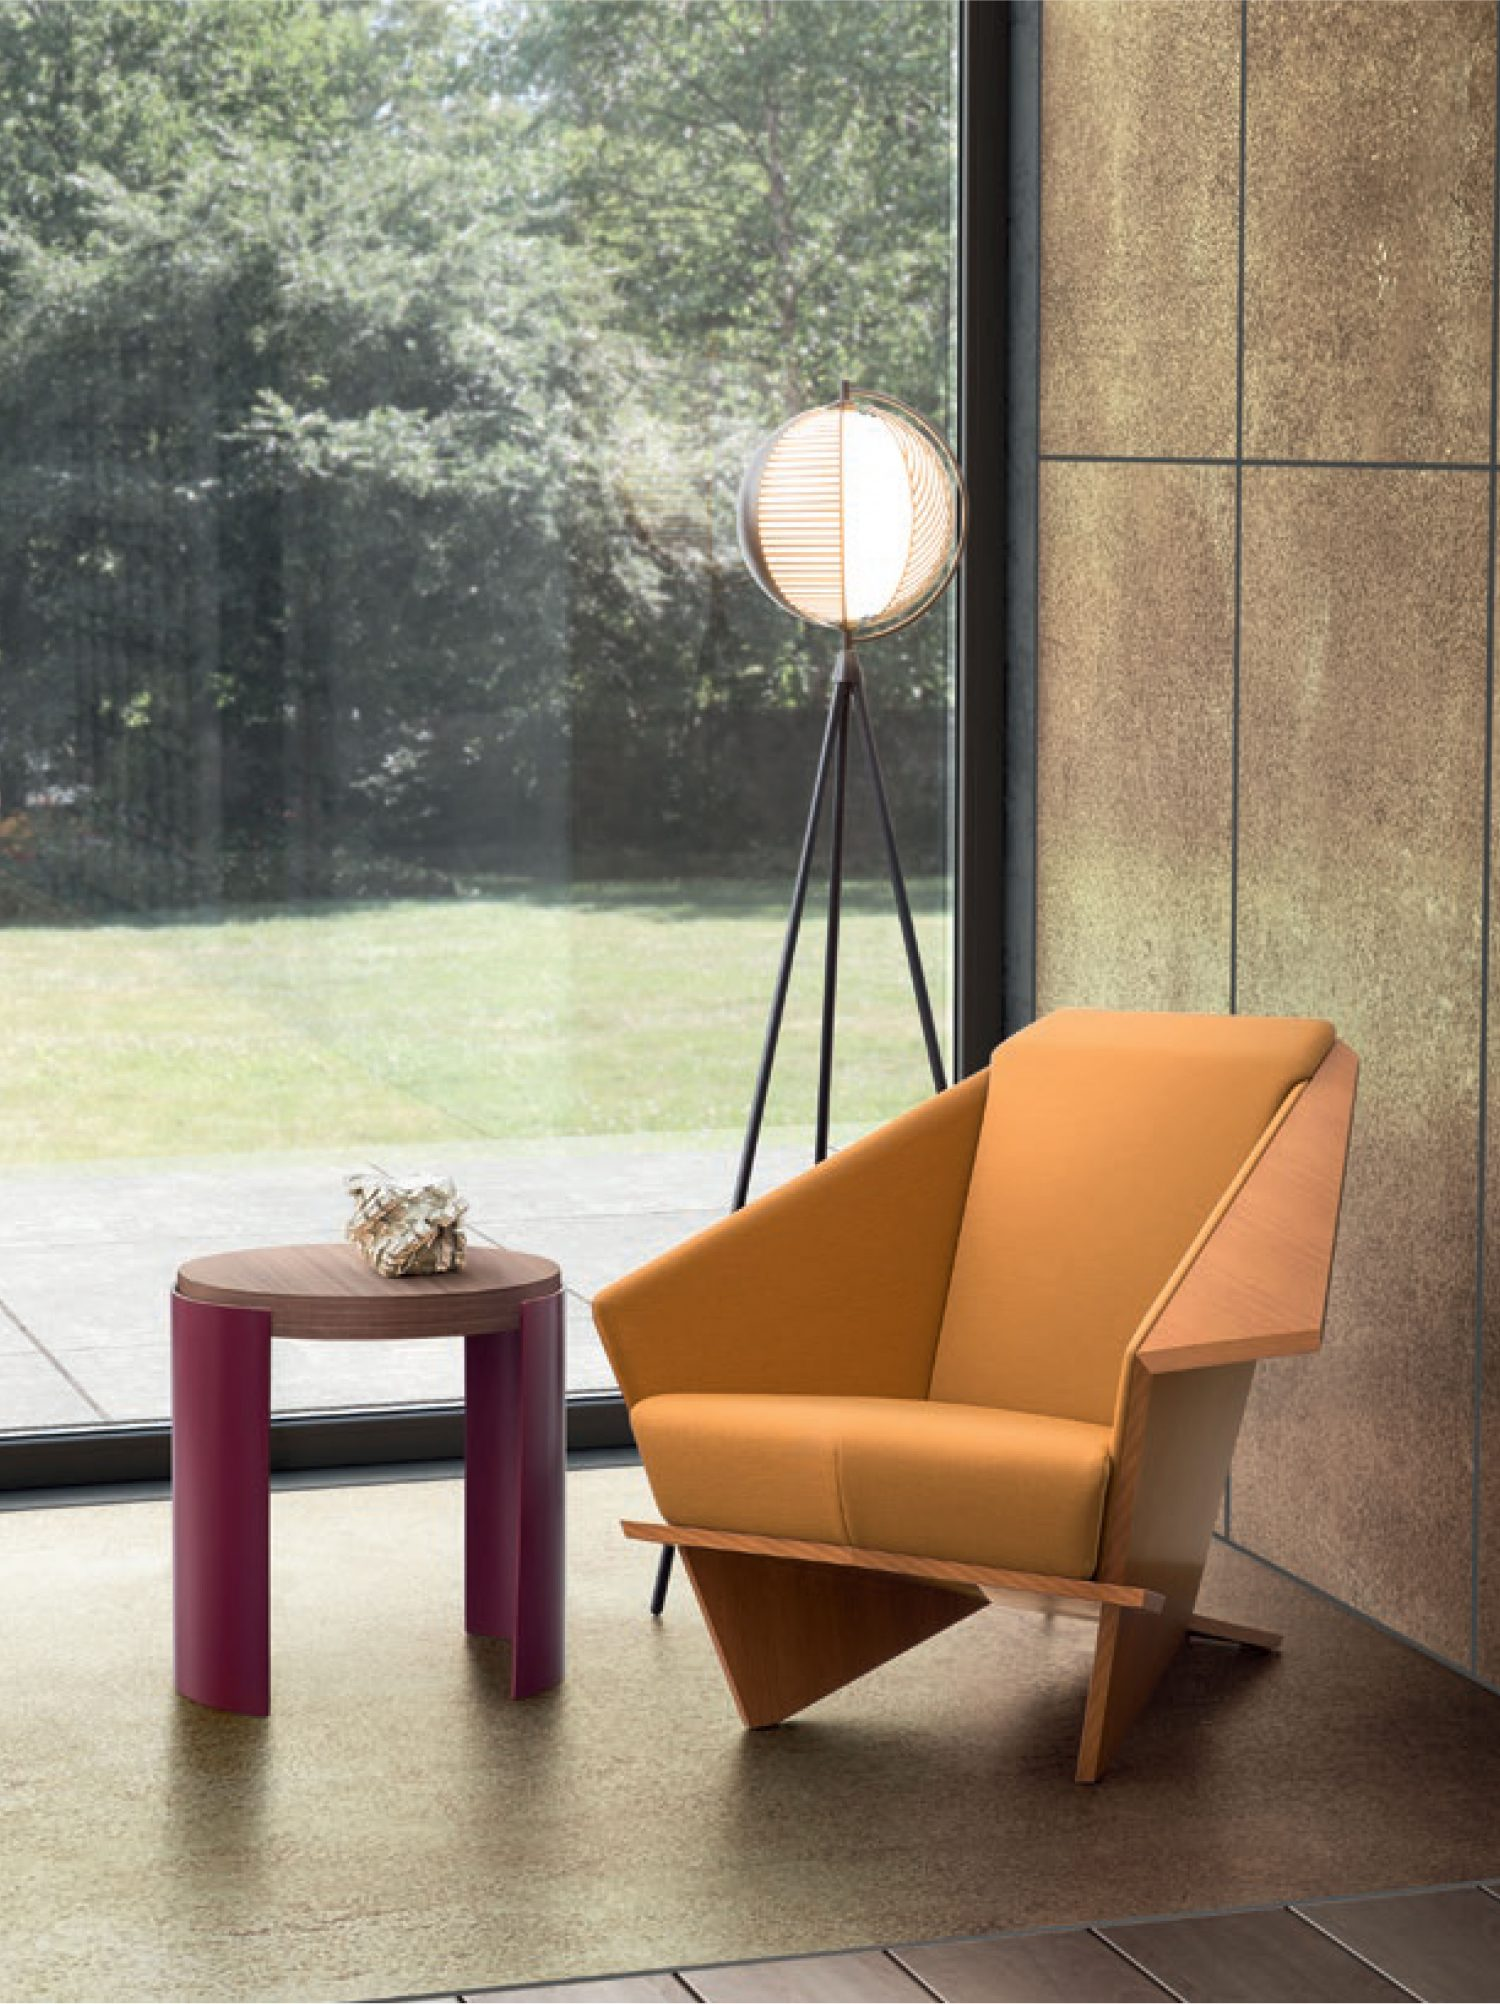 Mondo floor lamp featured with Cassina designer furniture from Frank Lloyd Wright